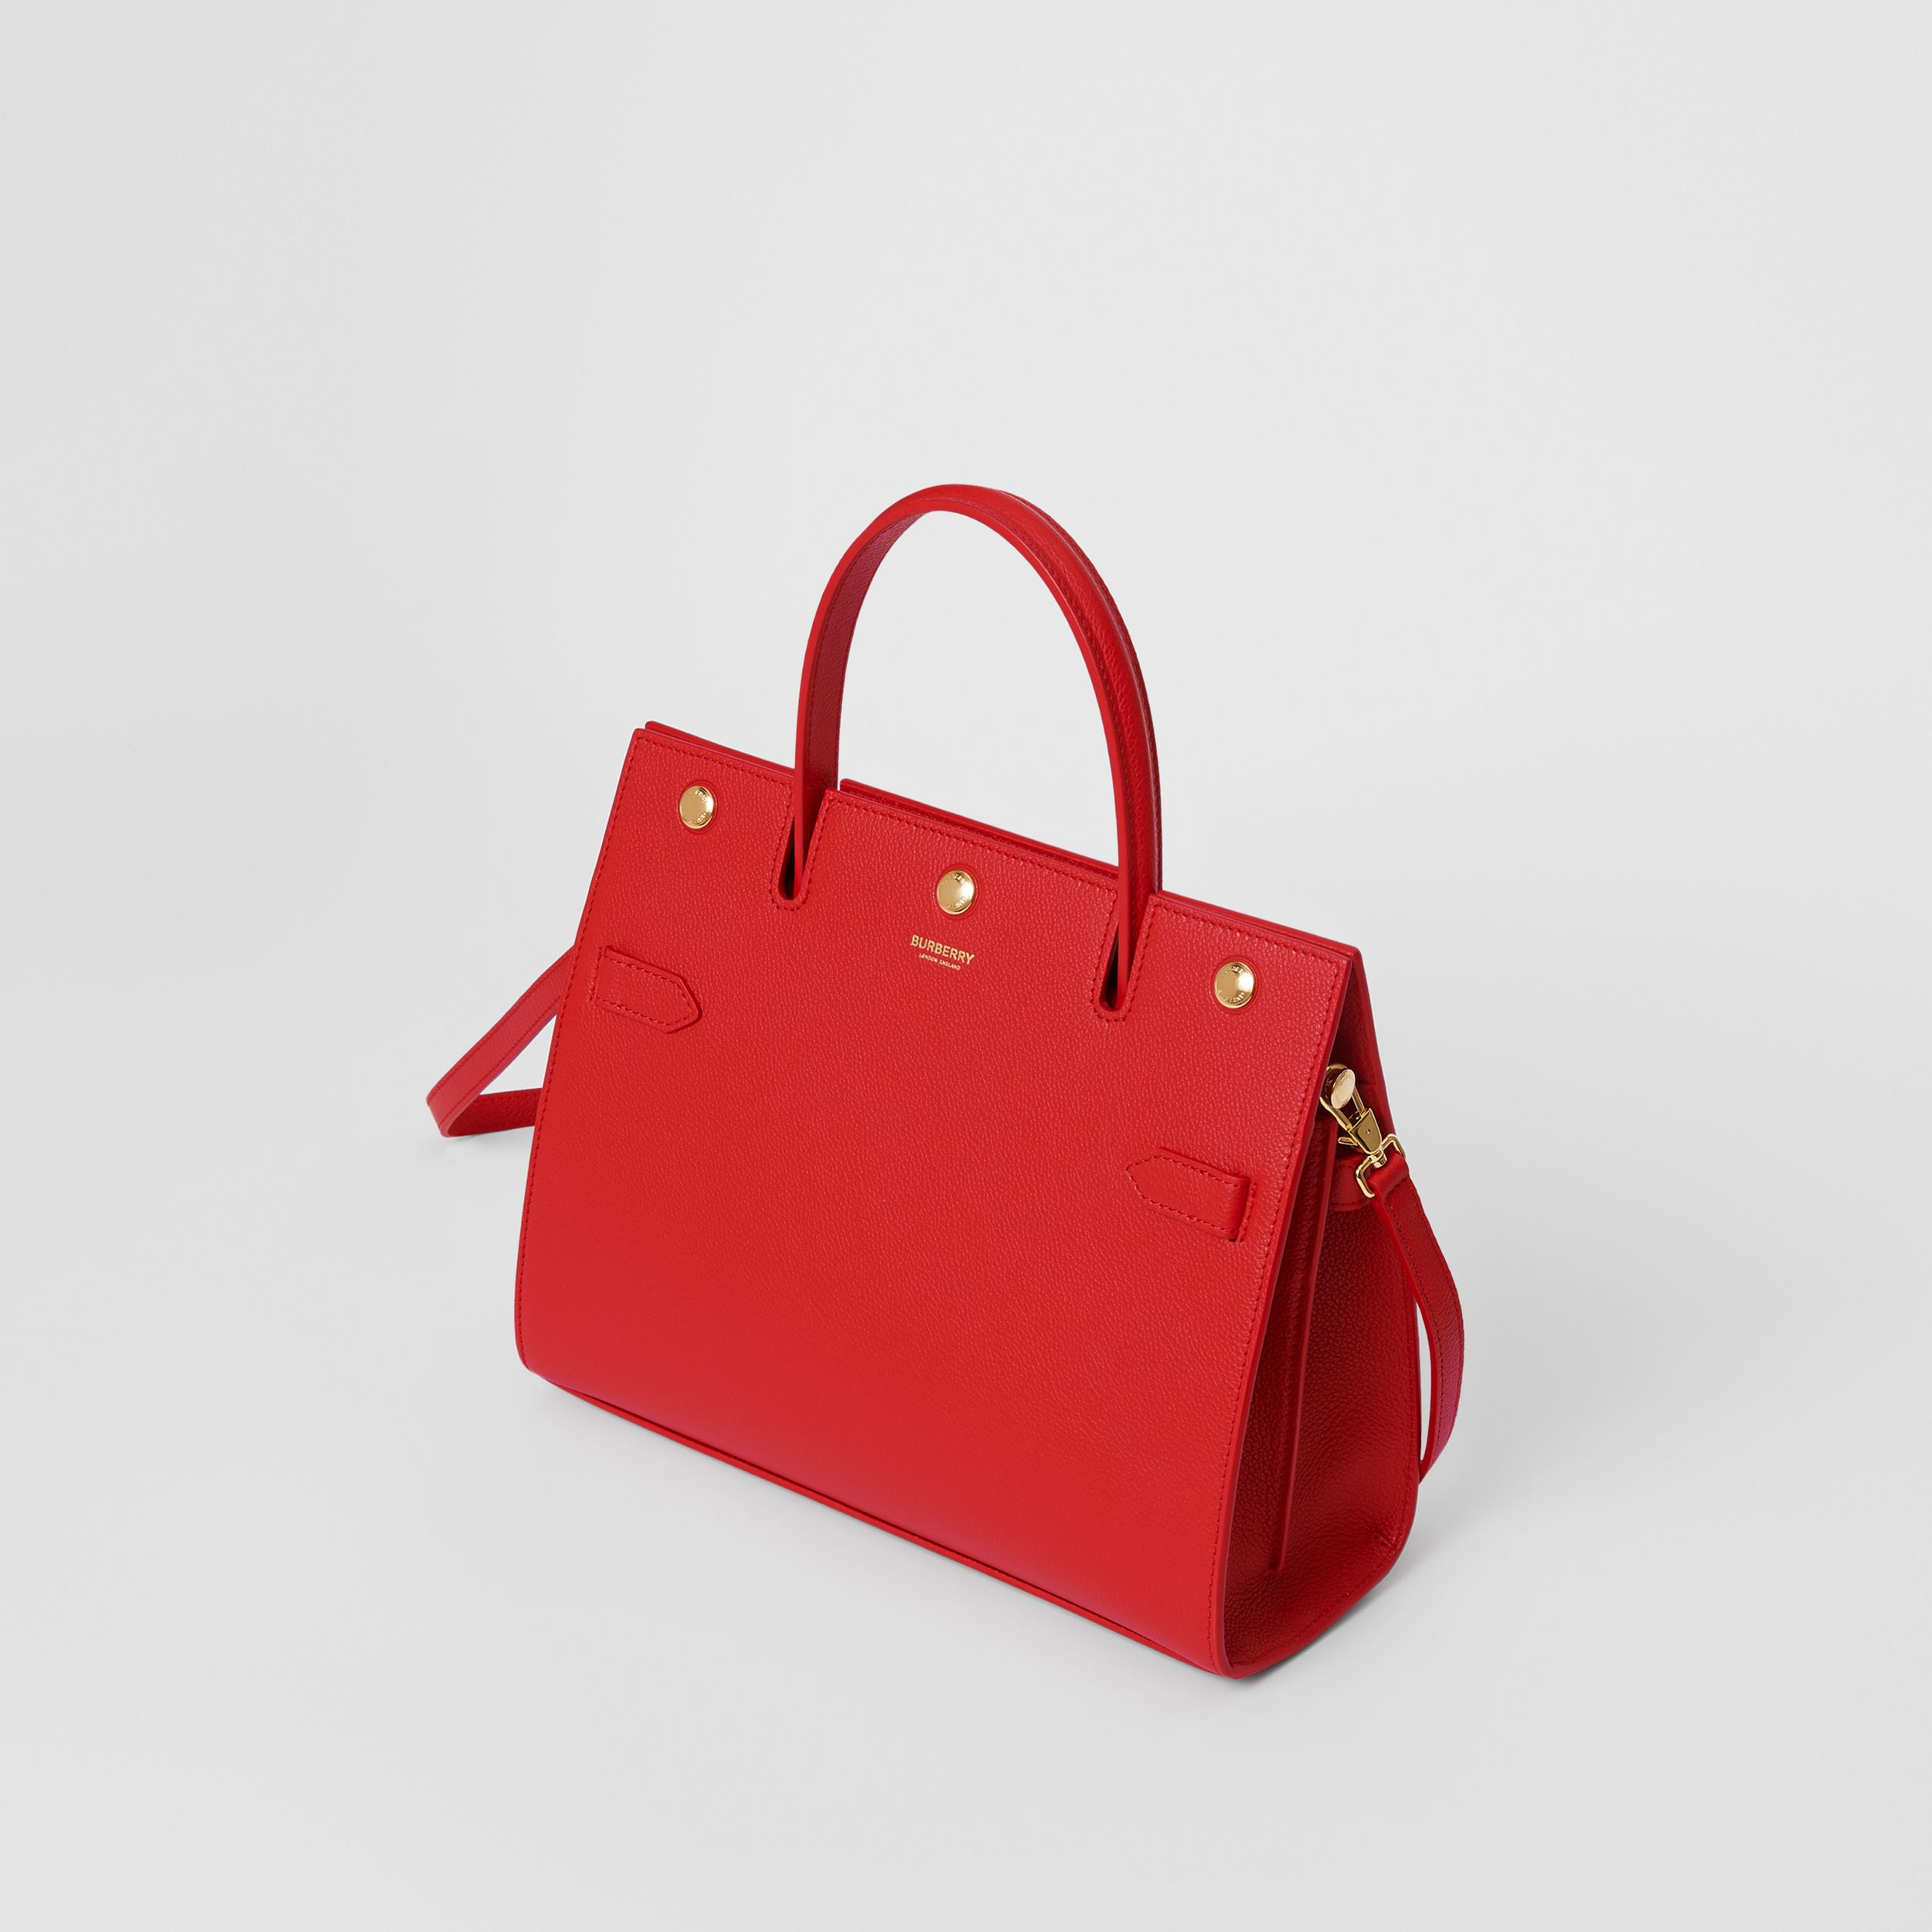 Small Leather Title Bag in Bright Red - Women | Burberry - 4